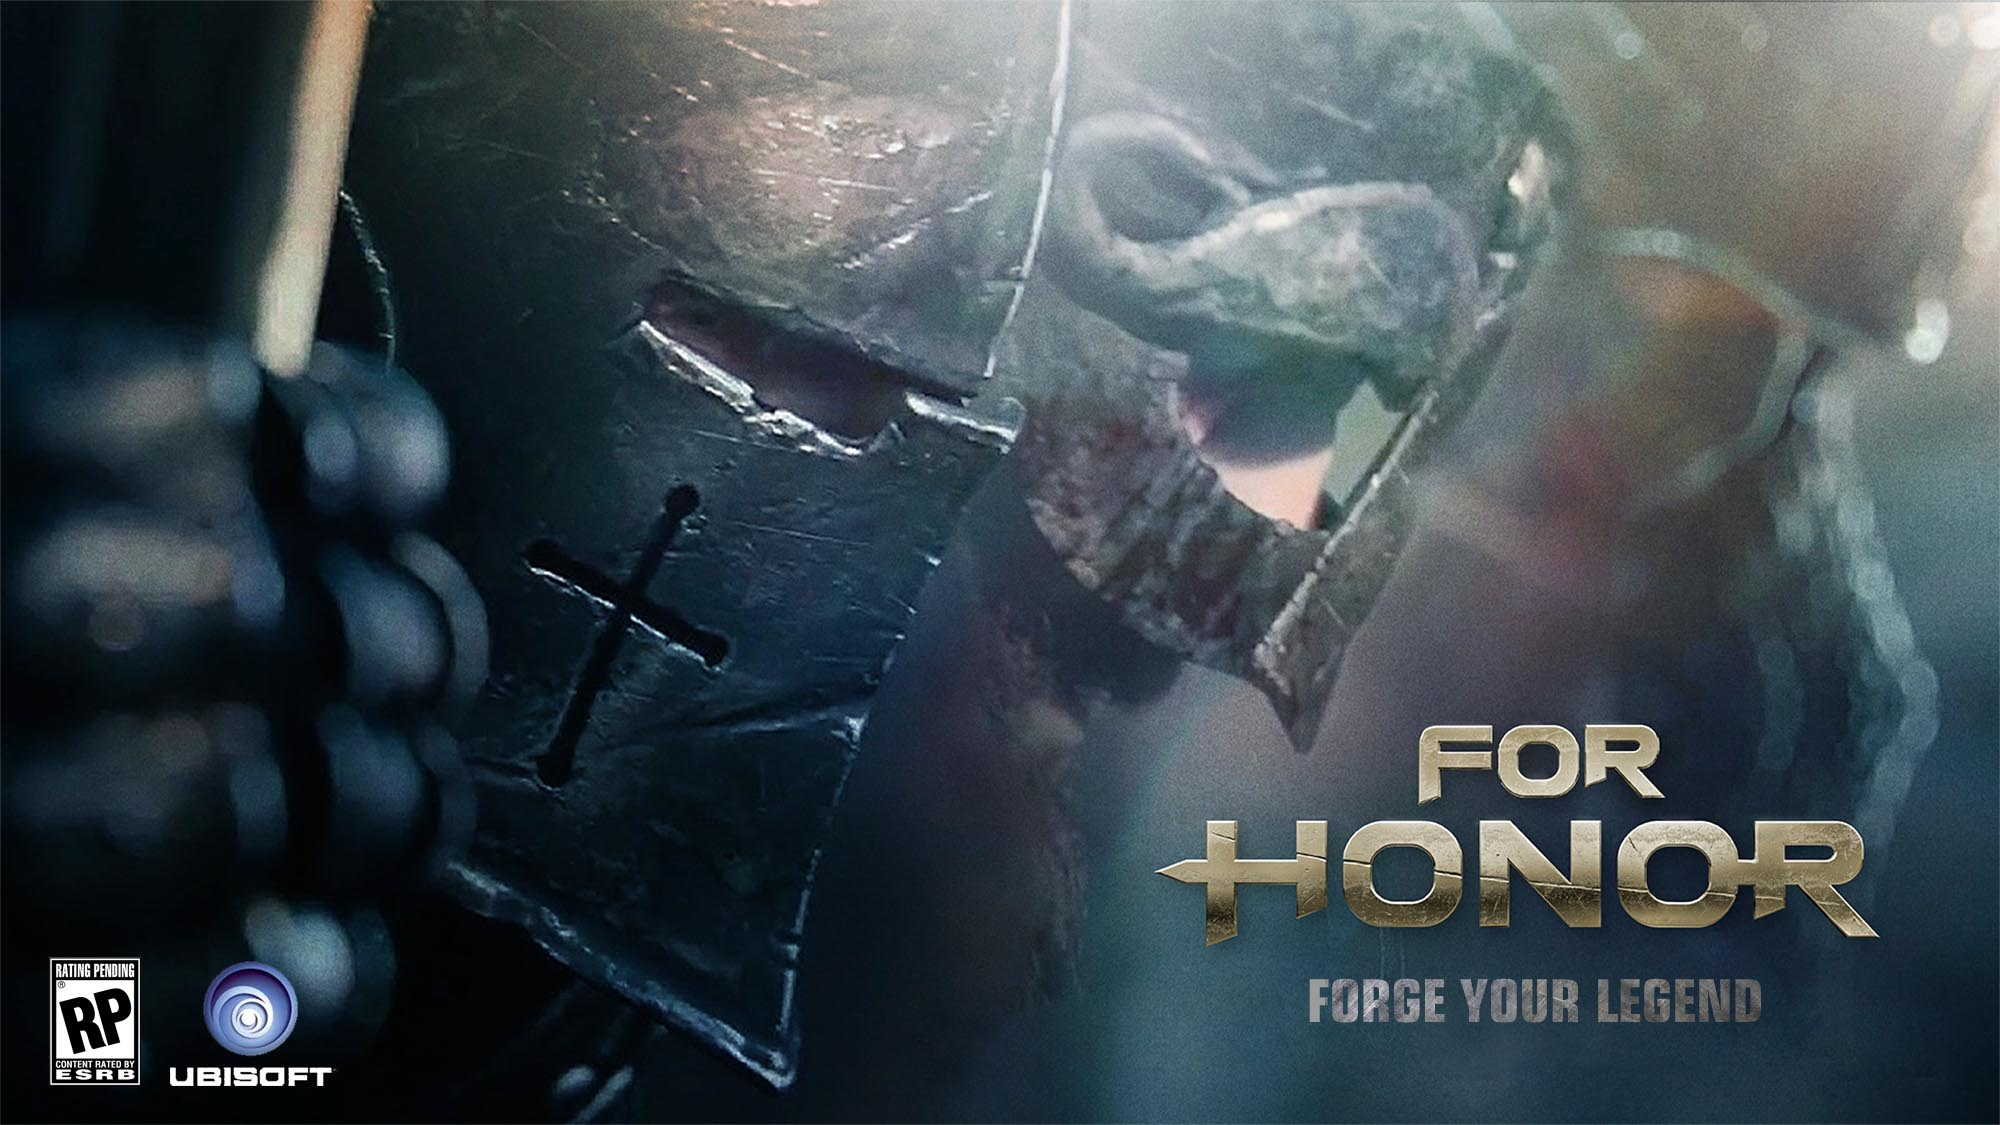 FH_FORGE2